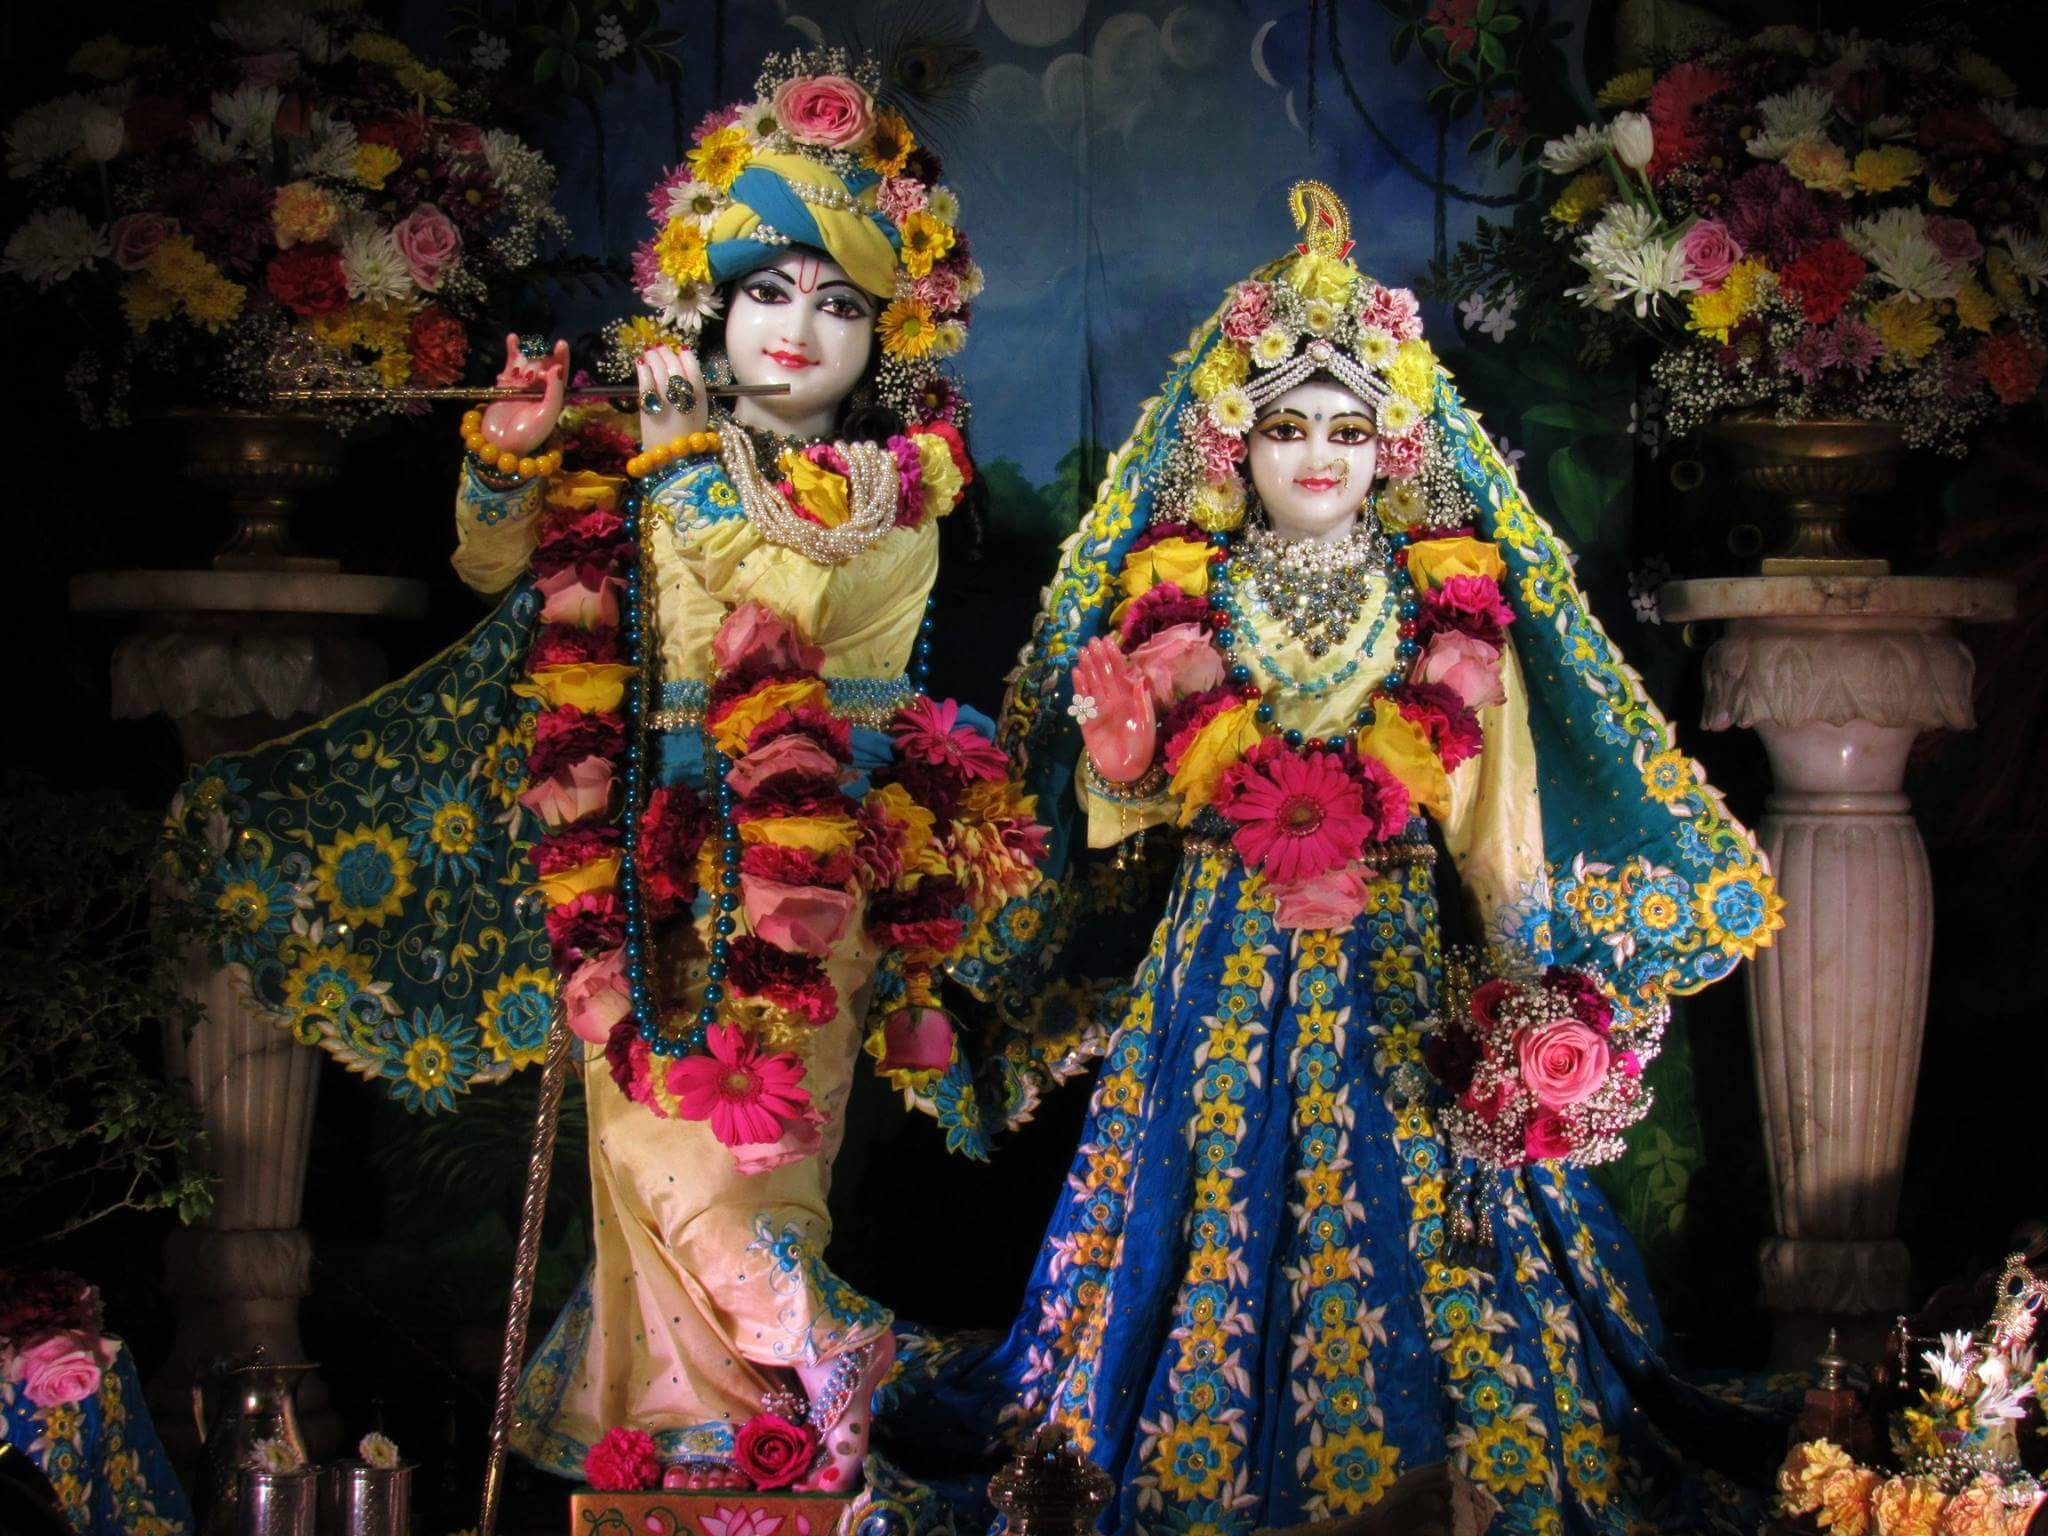 जय श्री राधे कृष्णा  #श्रीकृष्ण #श्रीकृष्णा #Temple #HareKrishna #ISKCON #LordKrishna #Makeuplover #MakeupArtist #India #Beautiful #Beauty #Art #Pics #Diamond #Jewellery #Love #Hindu #Decoration  #Costume #flowers #Artist #Flute #RadheKrishna #incredible #Picture #Picoftheday #Pic #Lovers #Artwork #Indiapictures #Lovely #Colour